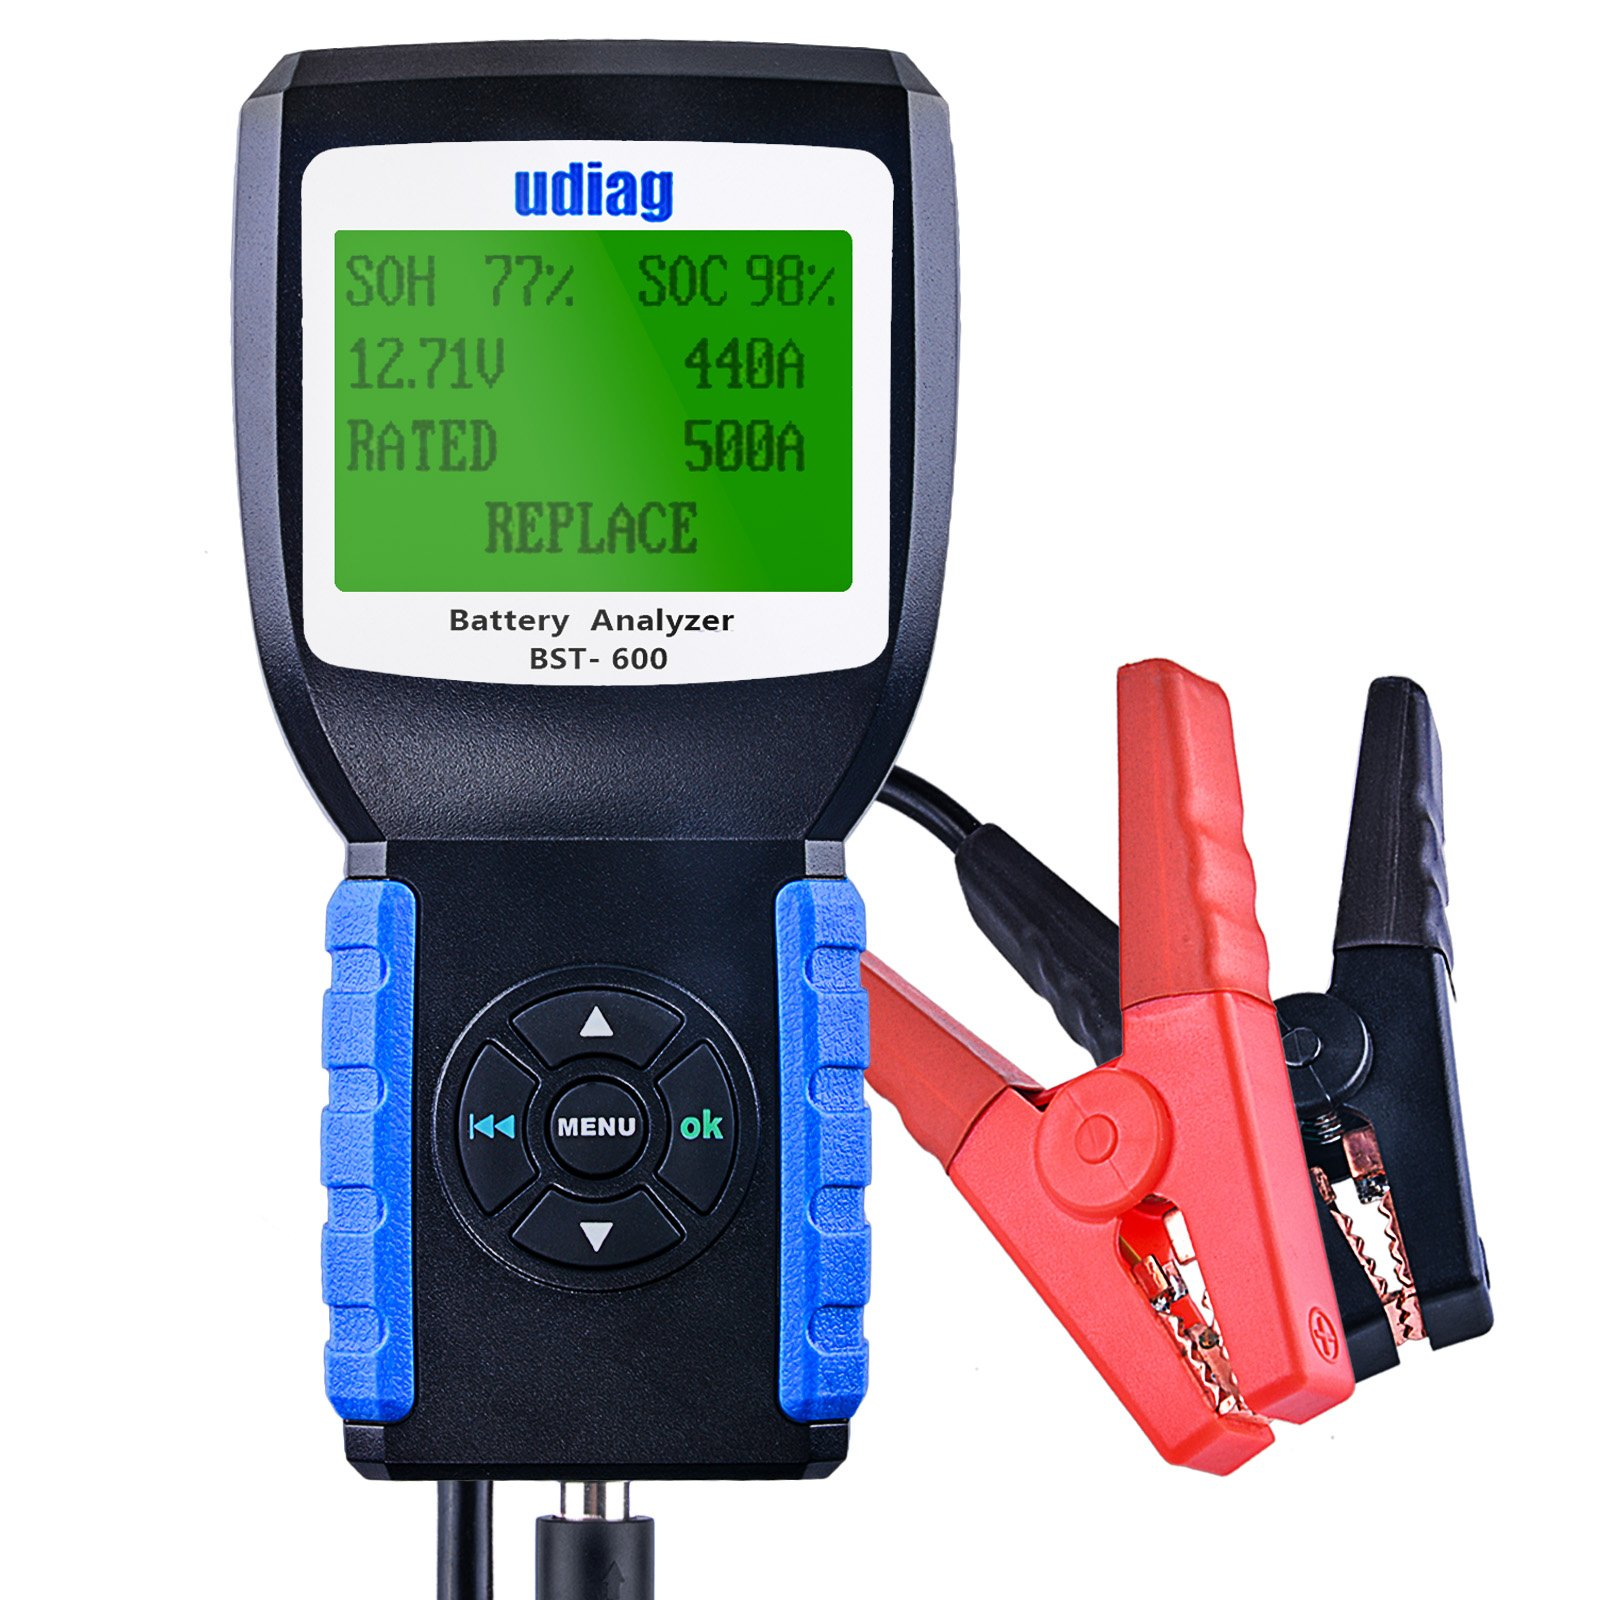 udiag BST600 12V Car Battery Analyzer 100-2000CCA 30-200AH Automotive Car Battery Load Tester, Cranking and Charging System Test Scan Tool Digital Battery Tester for Cars Blue